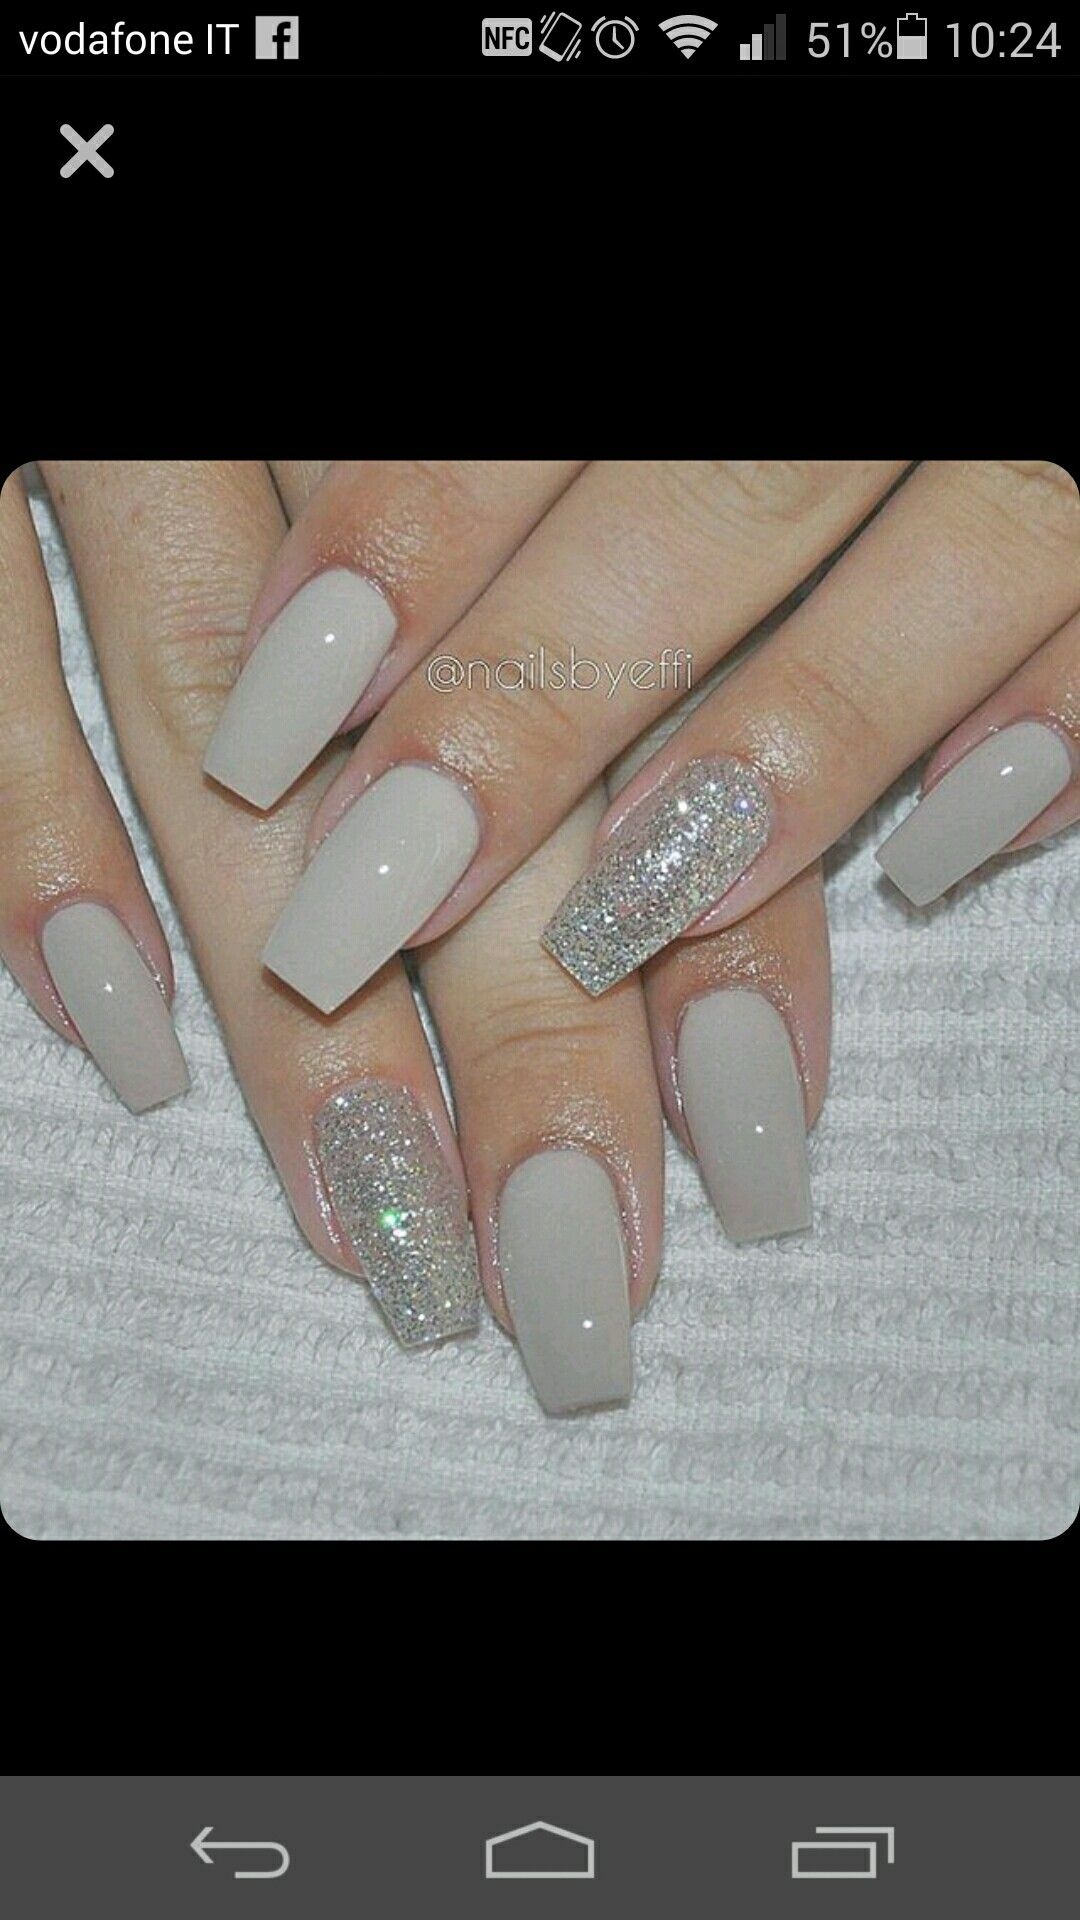 Pin by China on Макияж | Pinterest | Prom nails and Makeup